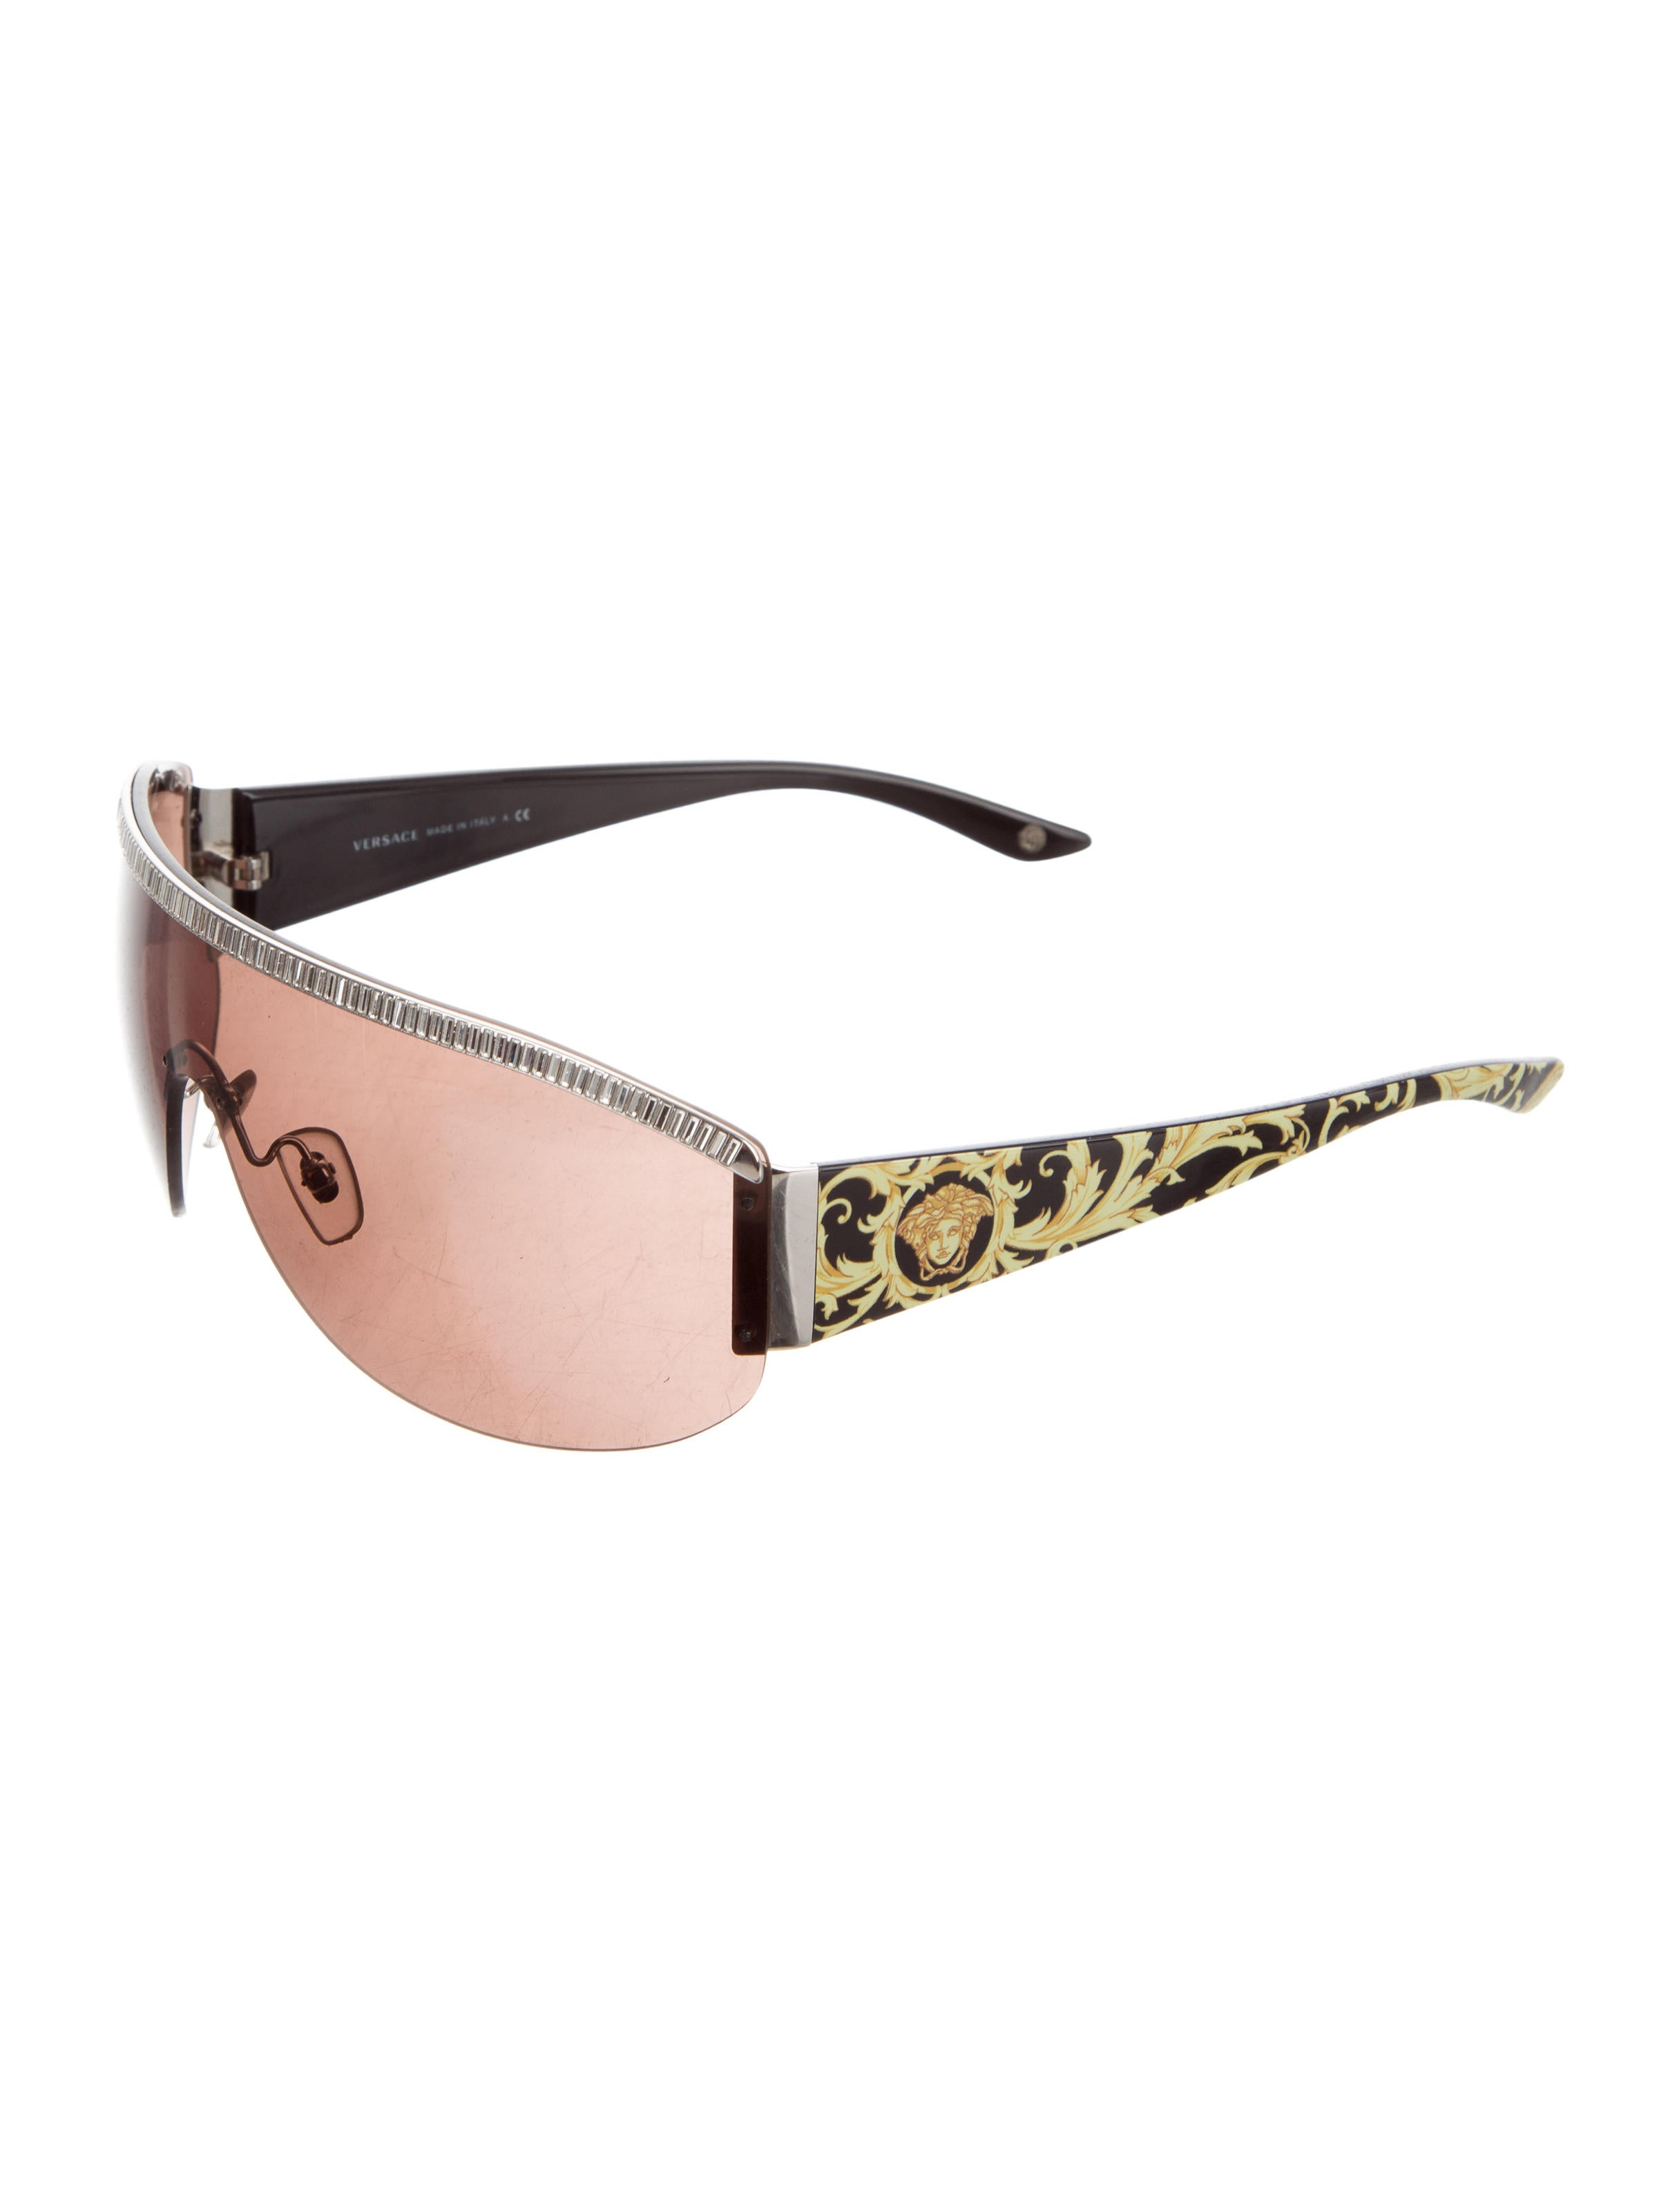 fd3402b3ec2 Versace Embellished Rimless Sunglasses - Accessories - VES32460